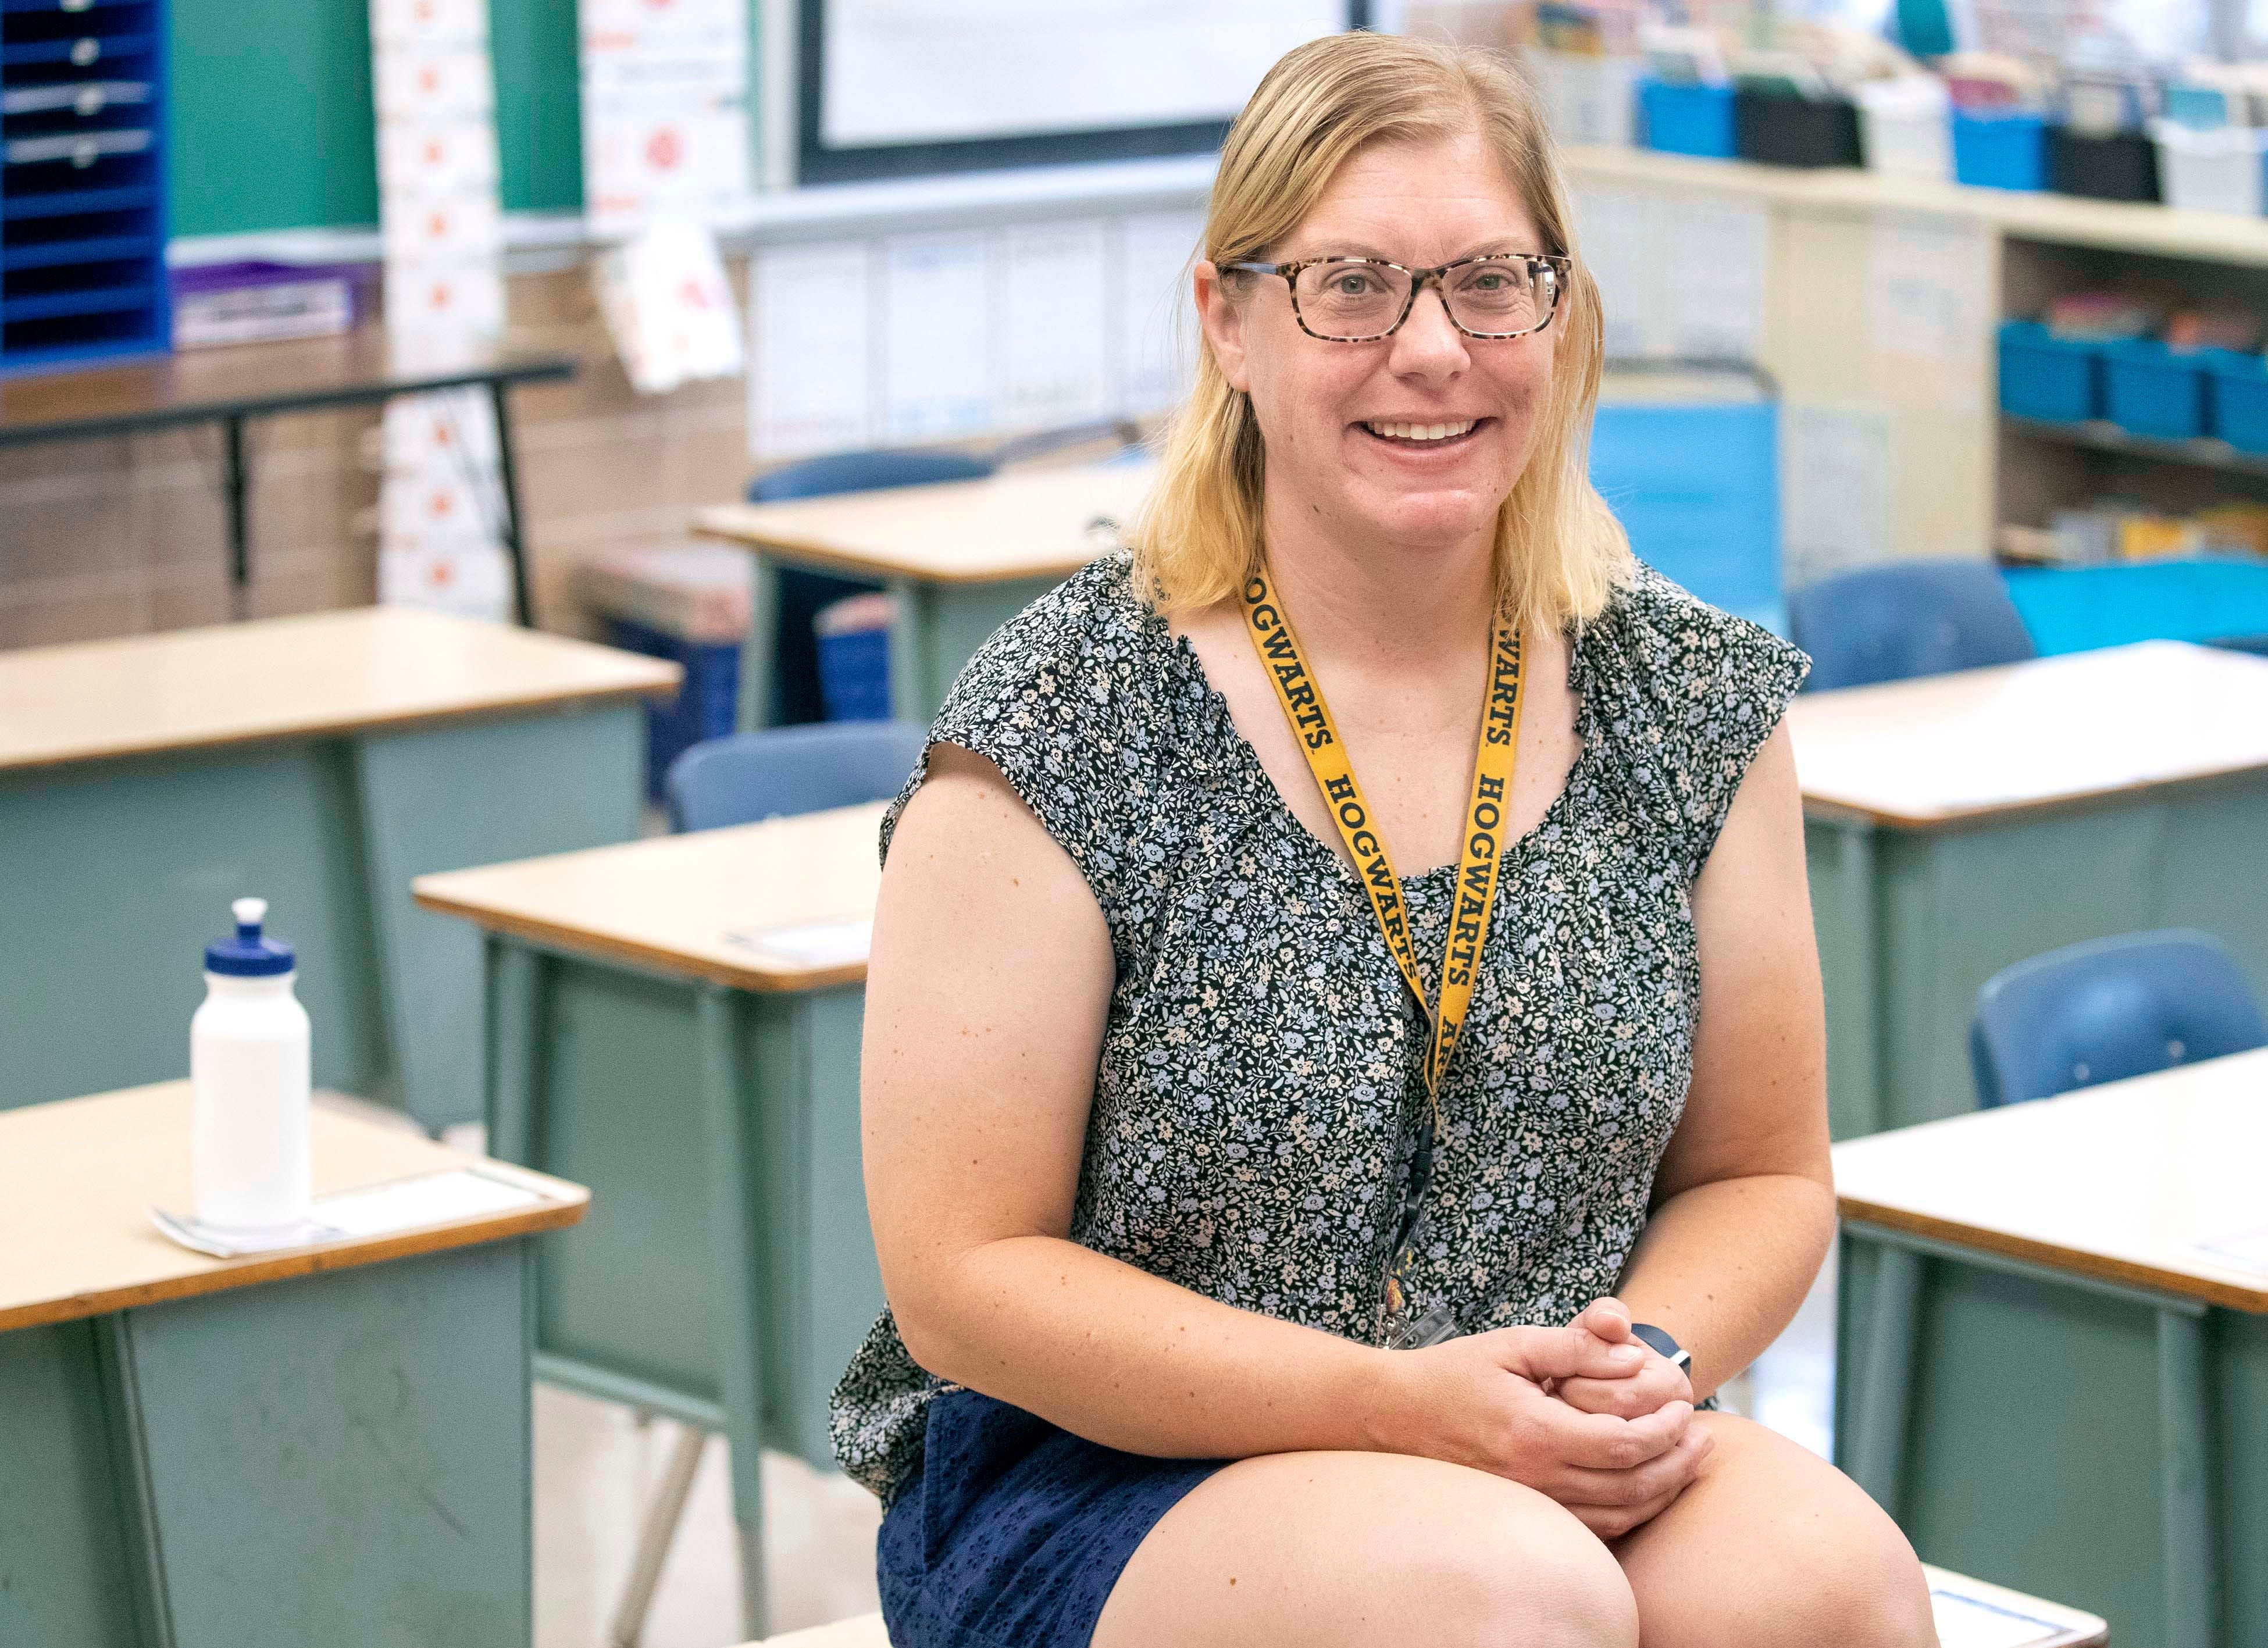 Jessica Borkowski is a Master Teacher at Northwest Catholic School. She teaches fifth grade but had taught kindergarten for several years at the school. Her K5 class was among the first to take part in Fund My Future Milwaukee, which opens a 529 college savings account with a $25 initial deposit.